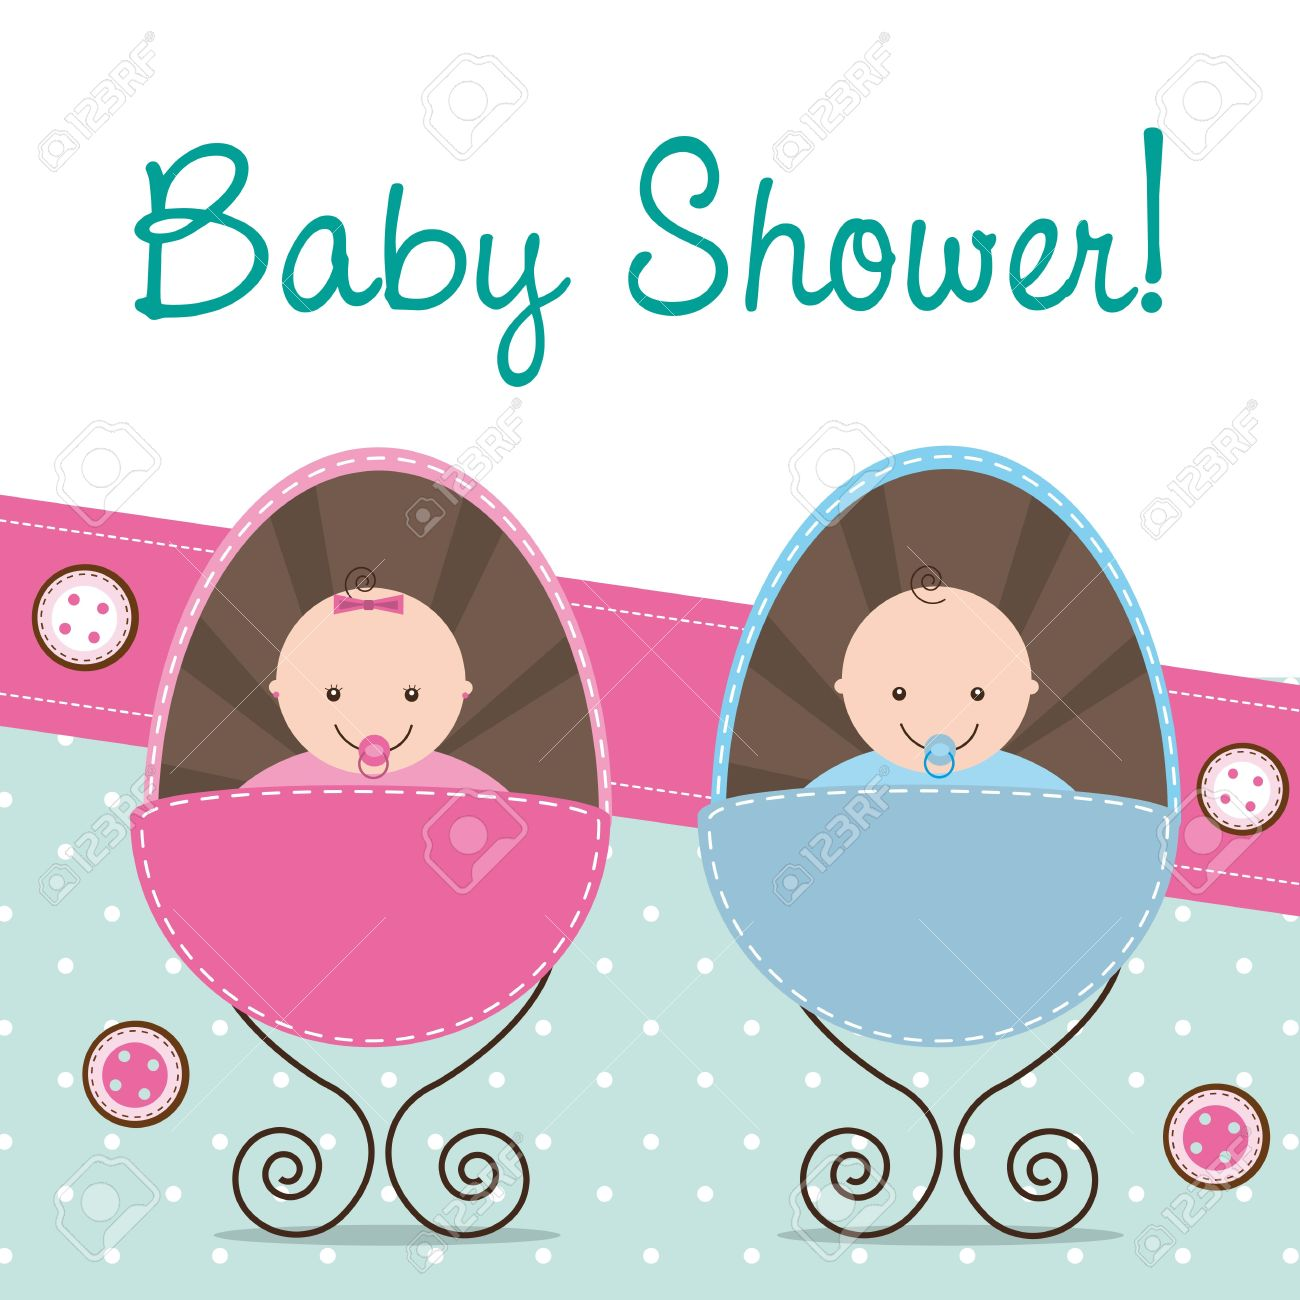 Baby Shower Card With Two Babies. Stock Vector   14038921